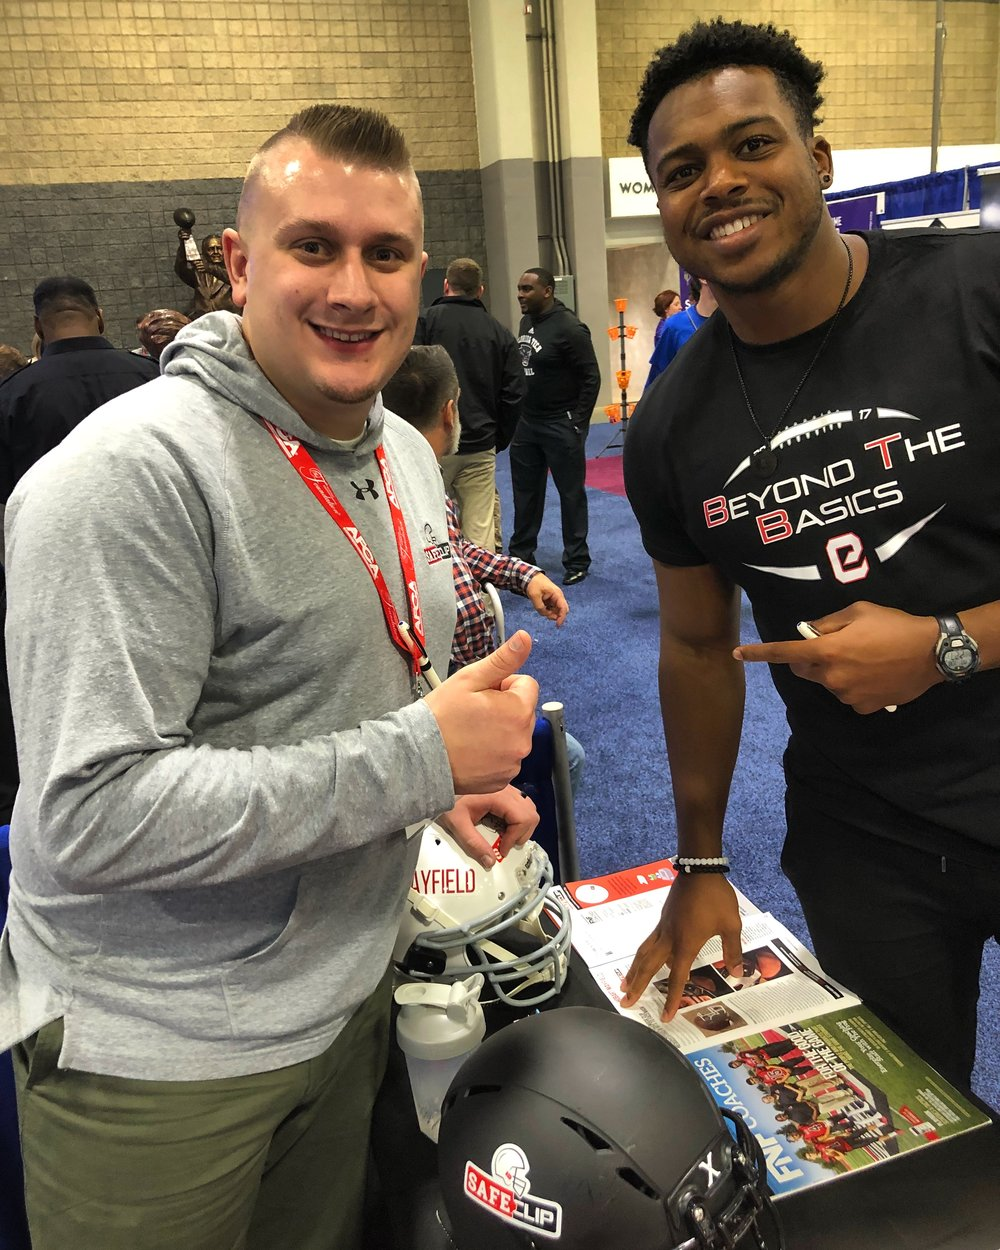 SAFEClip with Brandon Copeland (NFL Line Backer) at AFCA convention